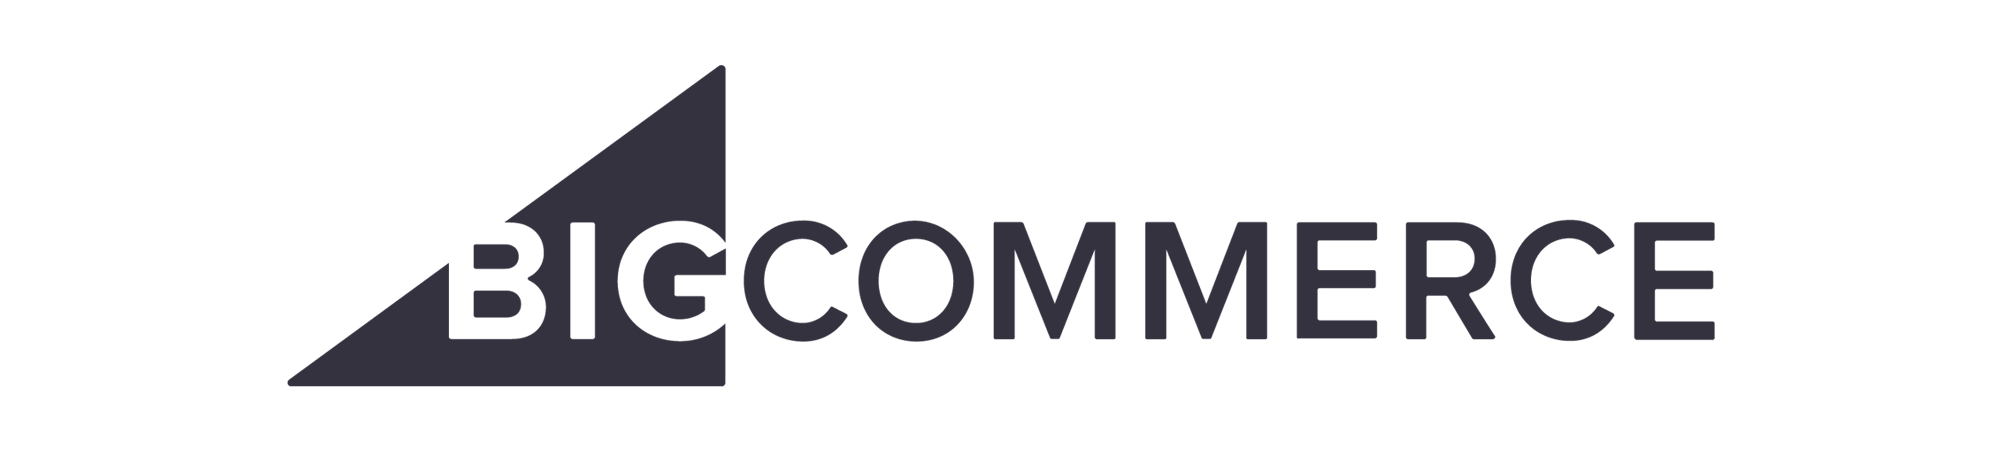 Big Commerce logo1